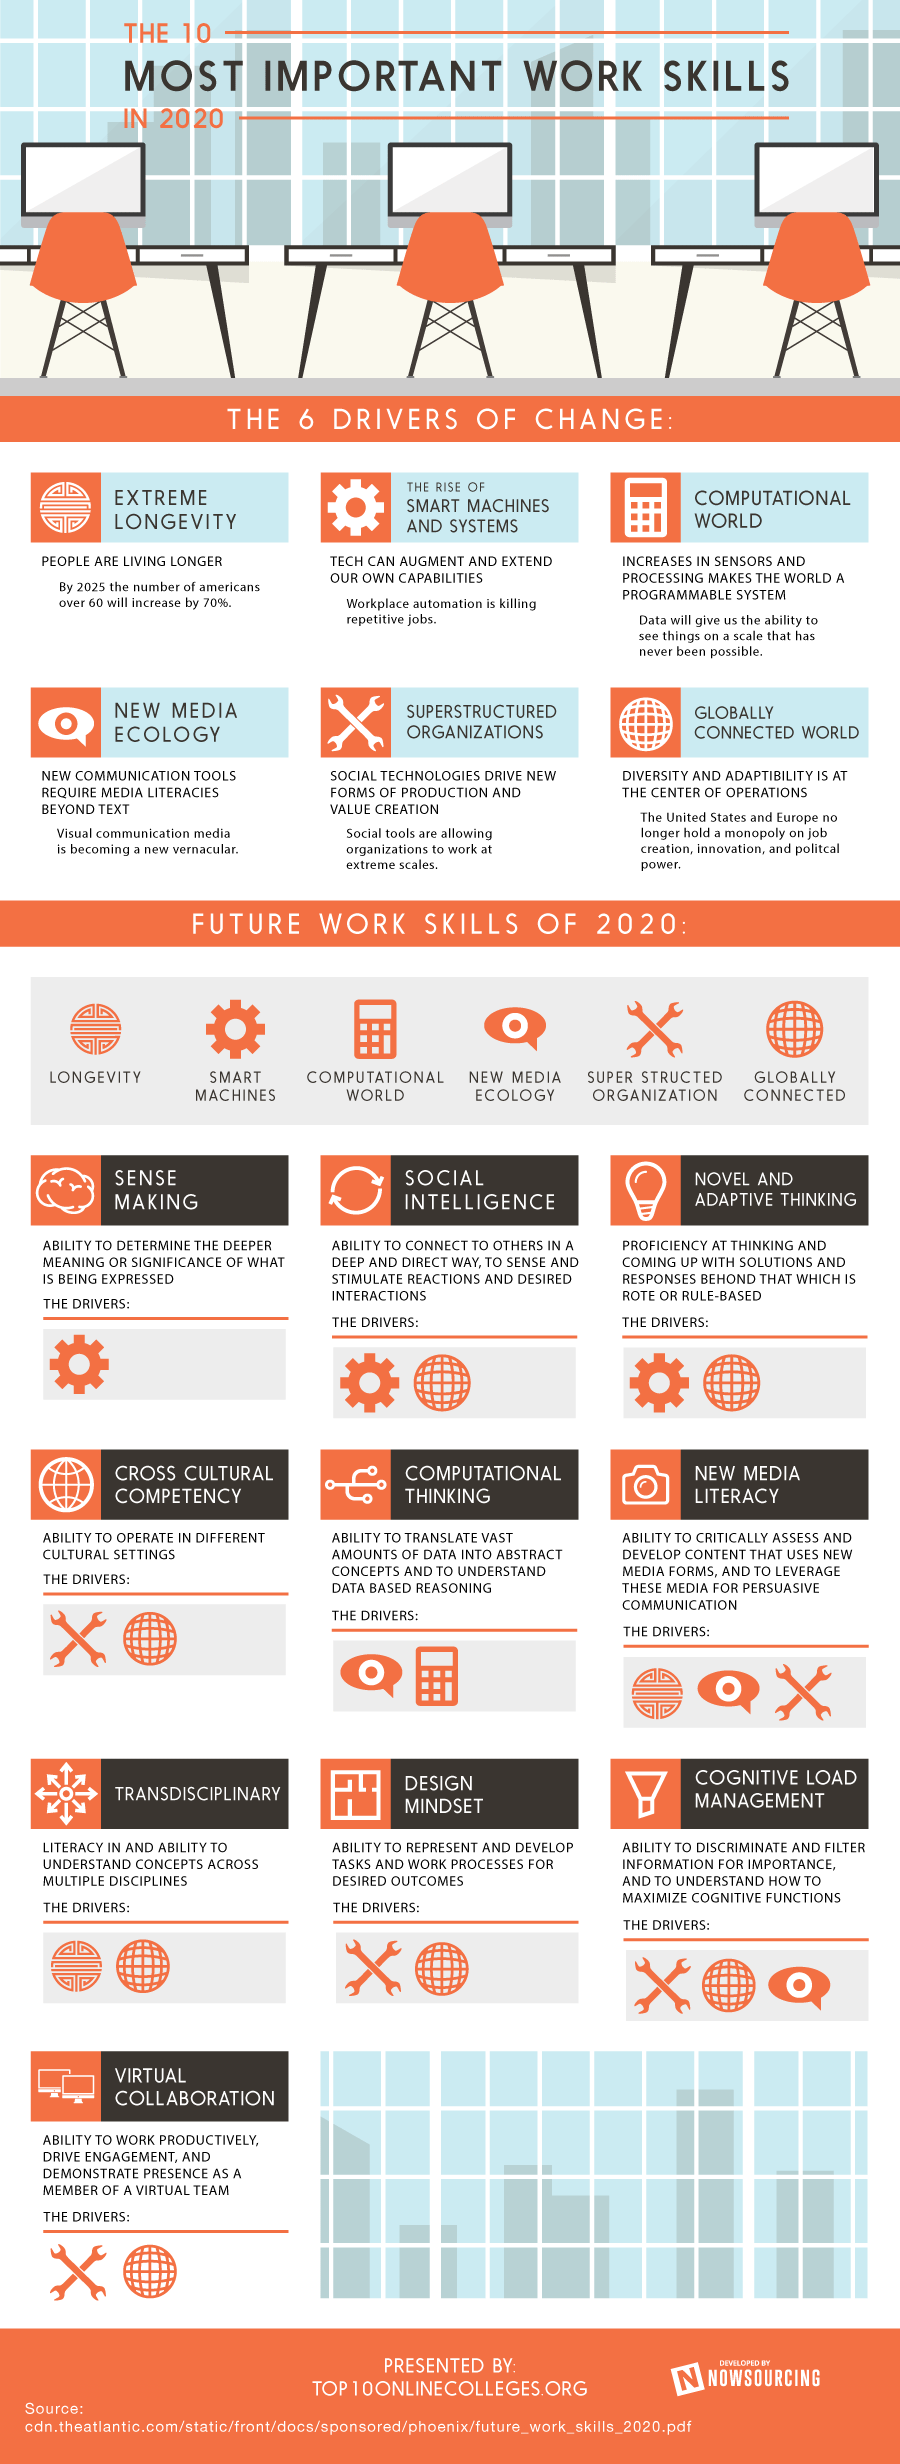 The 10 Most Important Work Skills in 2020 [Infographic] image important work skills1